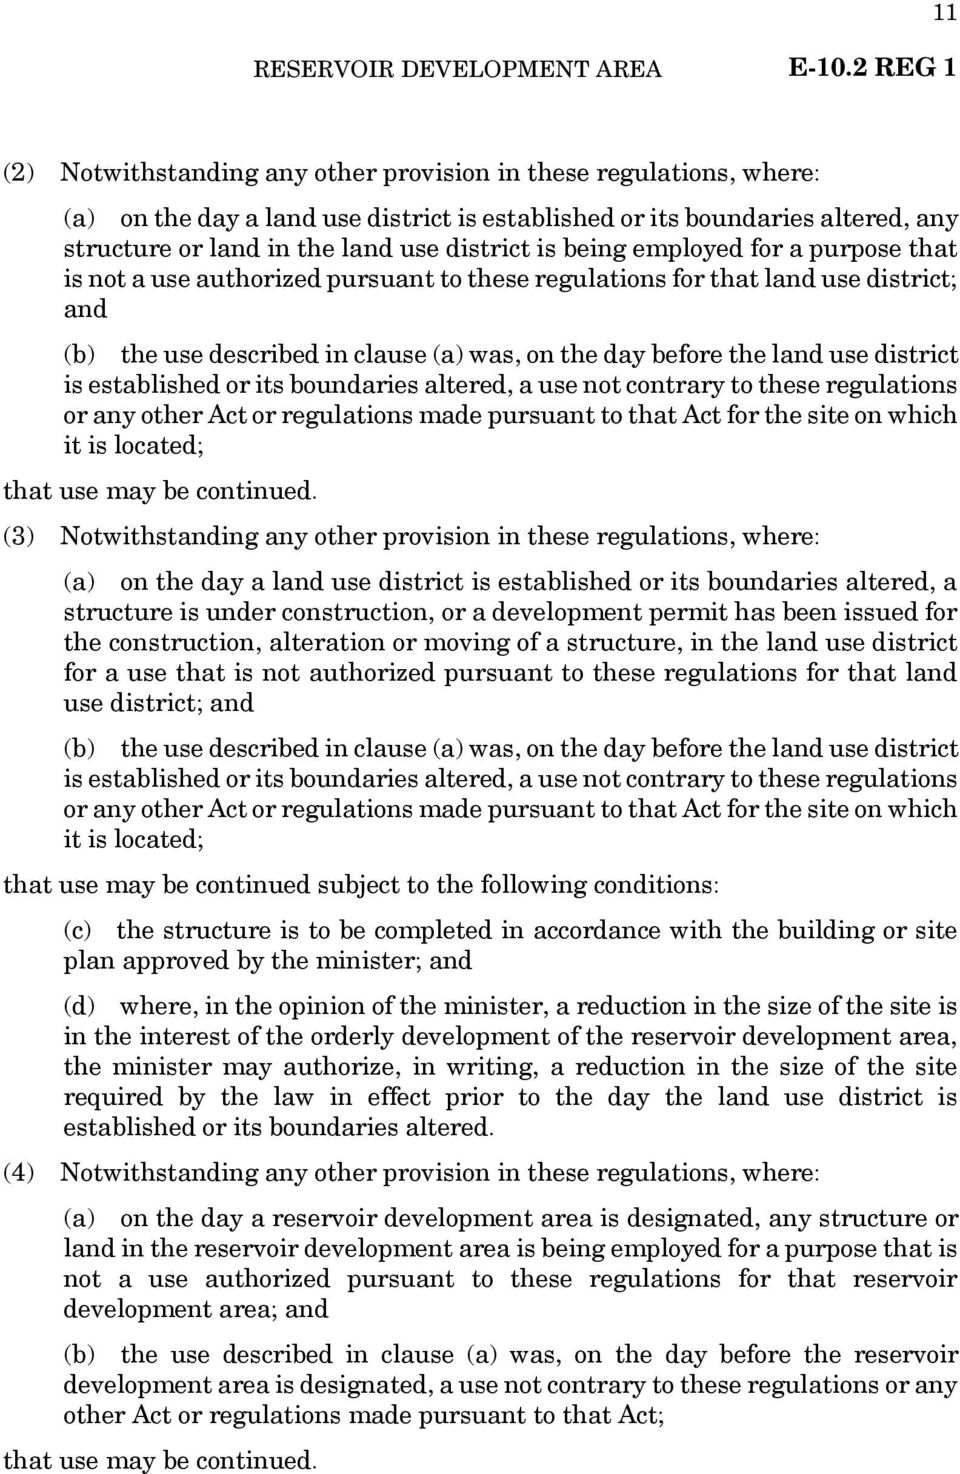 district is established or its boundaries altered, a use not contrary to these regulations or any other Act or regulations made pursuant to that Act for the site on which it is located; that use may